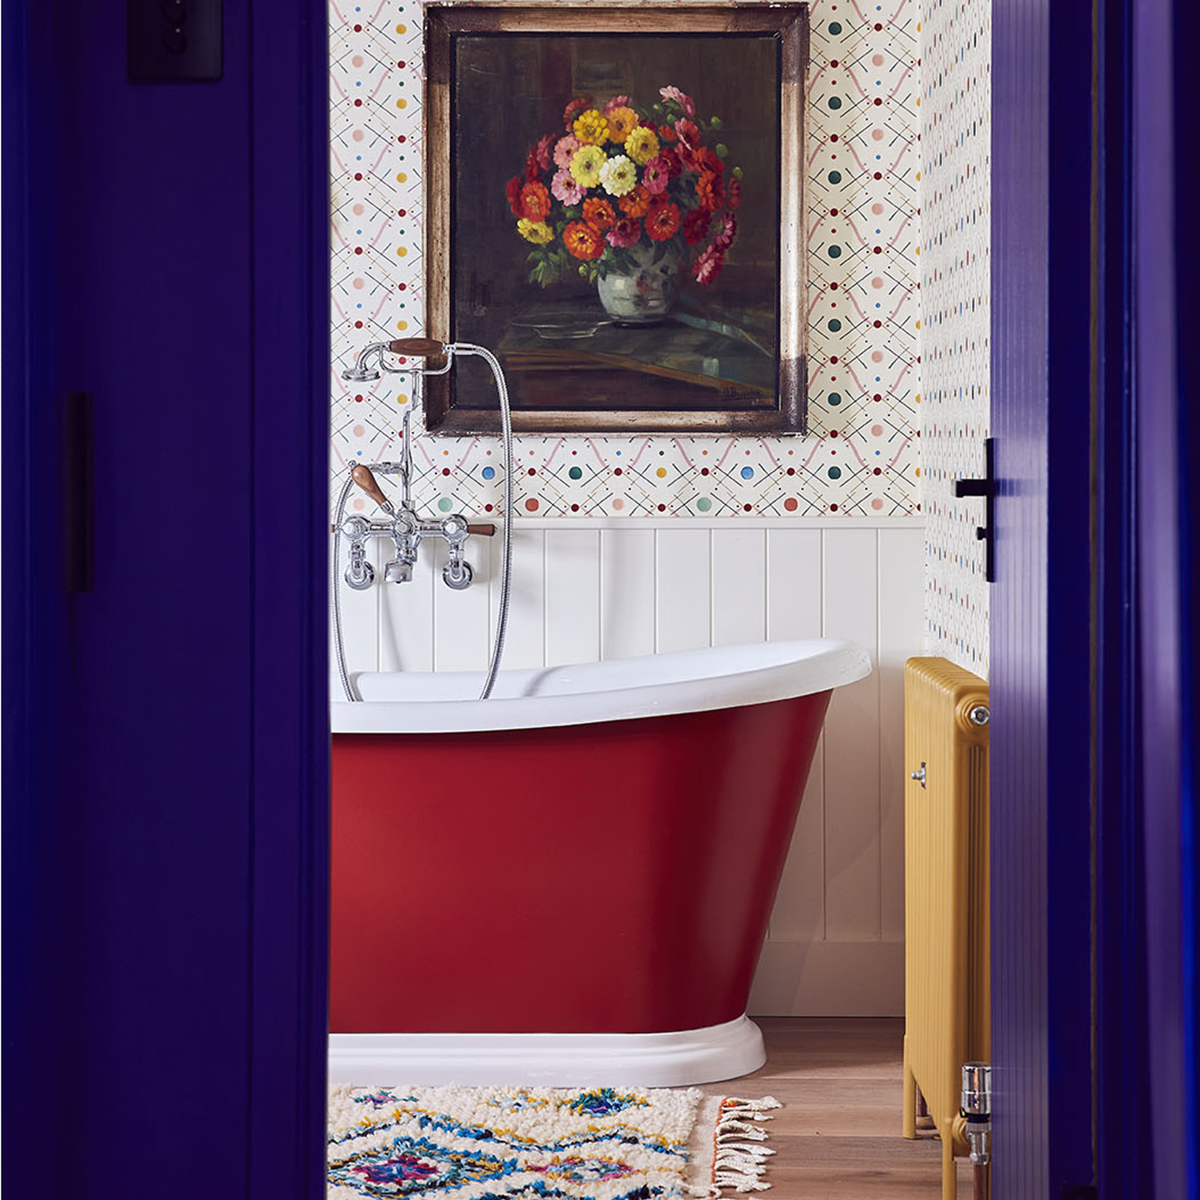 Looking through cobalt blue door and frame to red roll tap bath vintage framed art and yellow radiator in the bathroom of Sophie Robinson